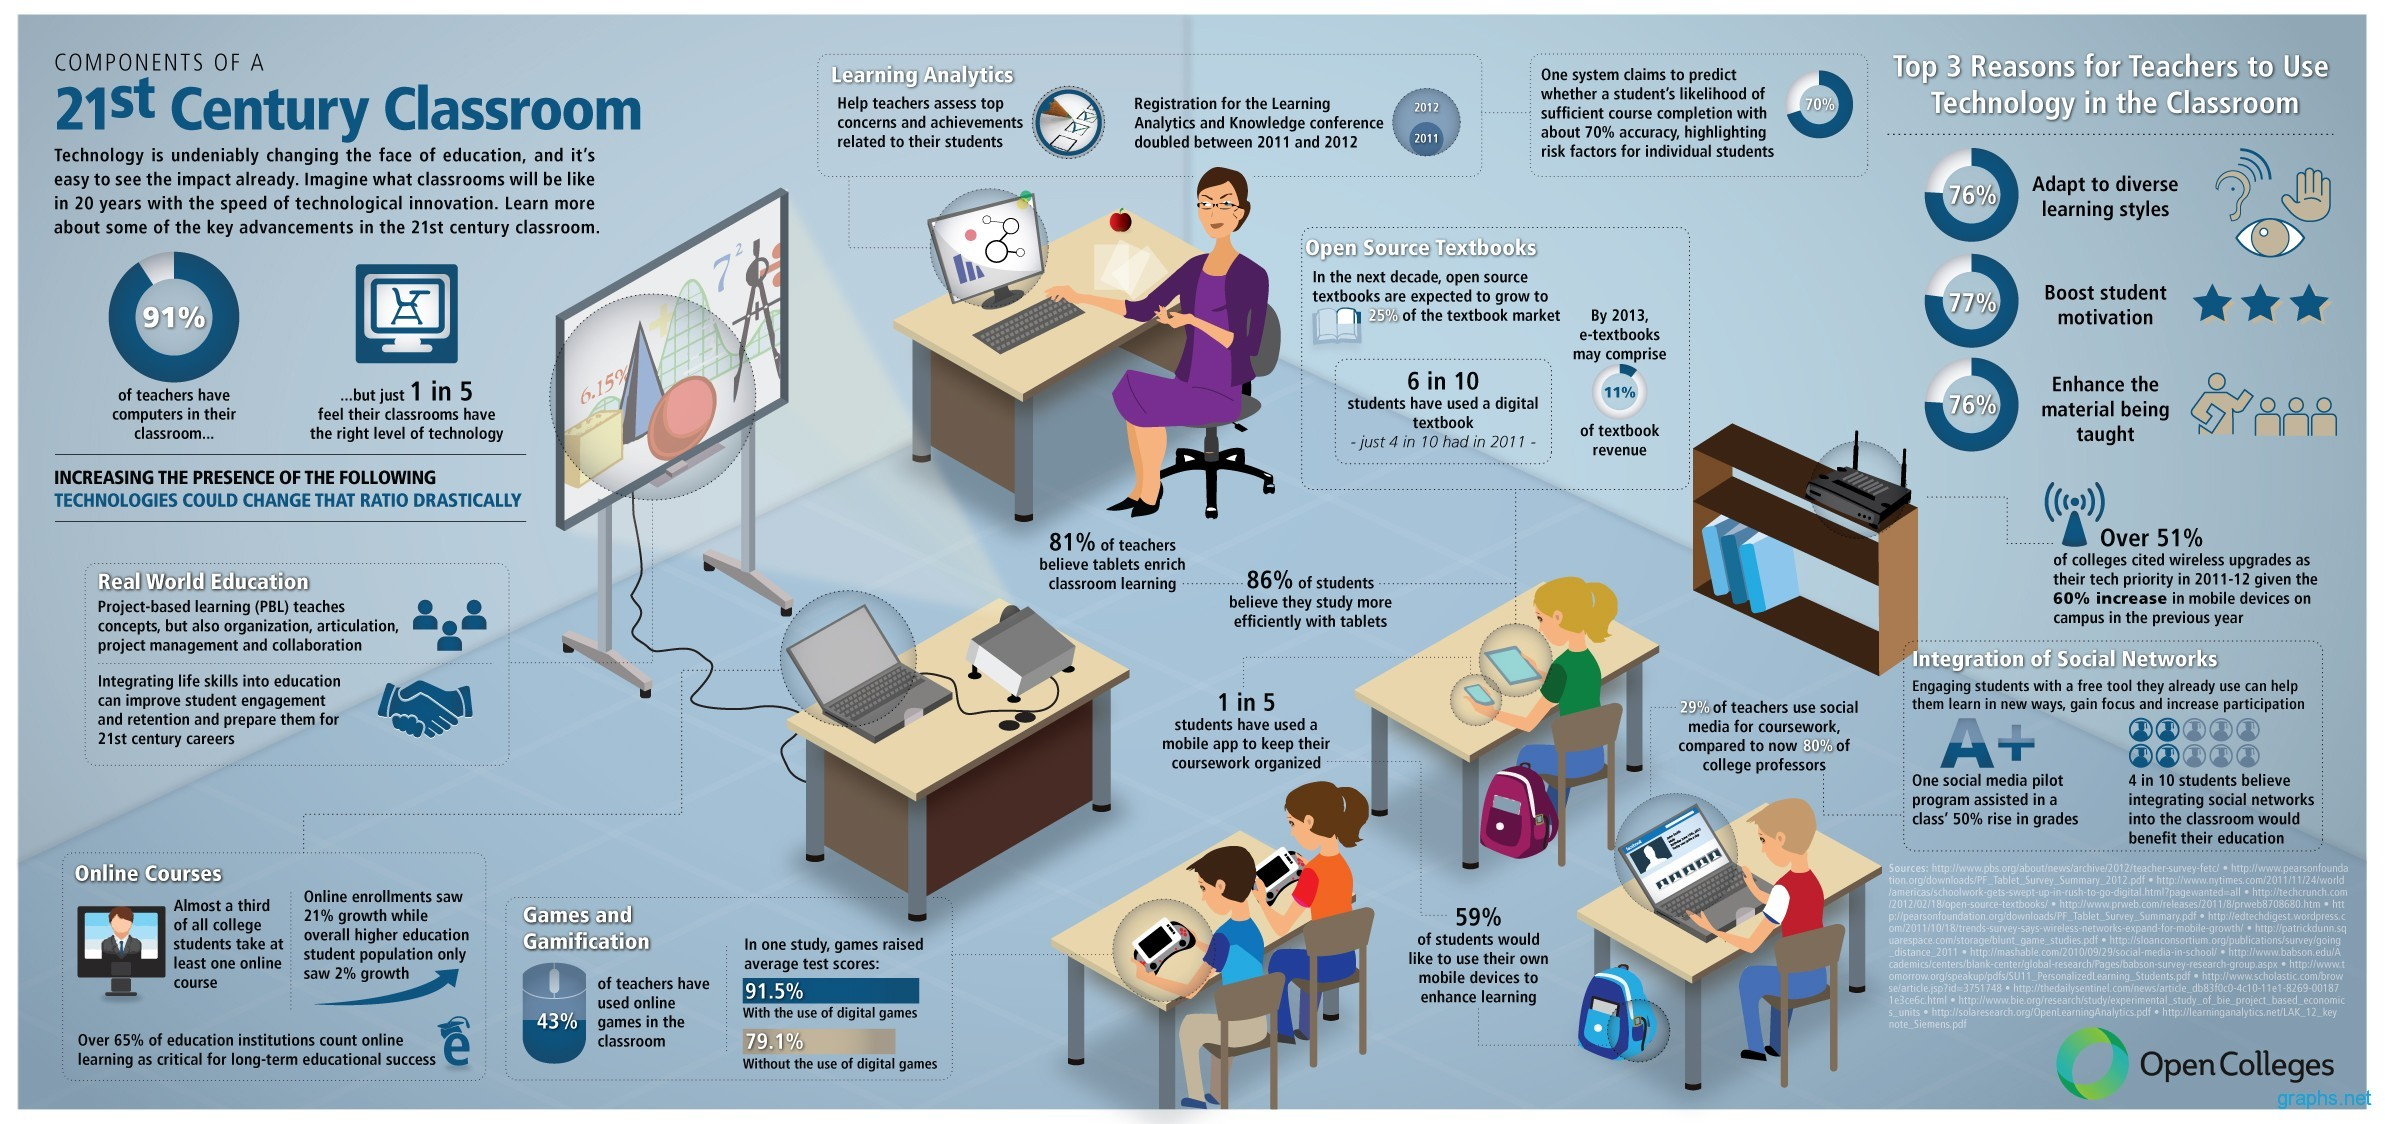 Modern Classroom Vs Traditional Classroom ~ St century classroom components infographics graphs